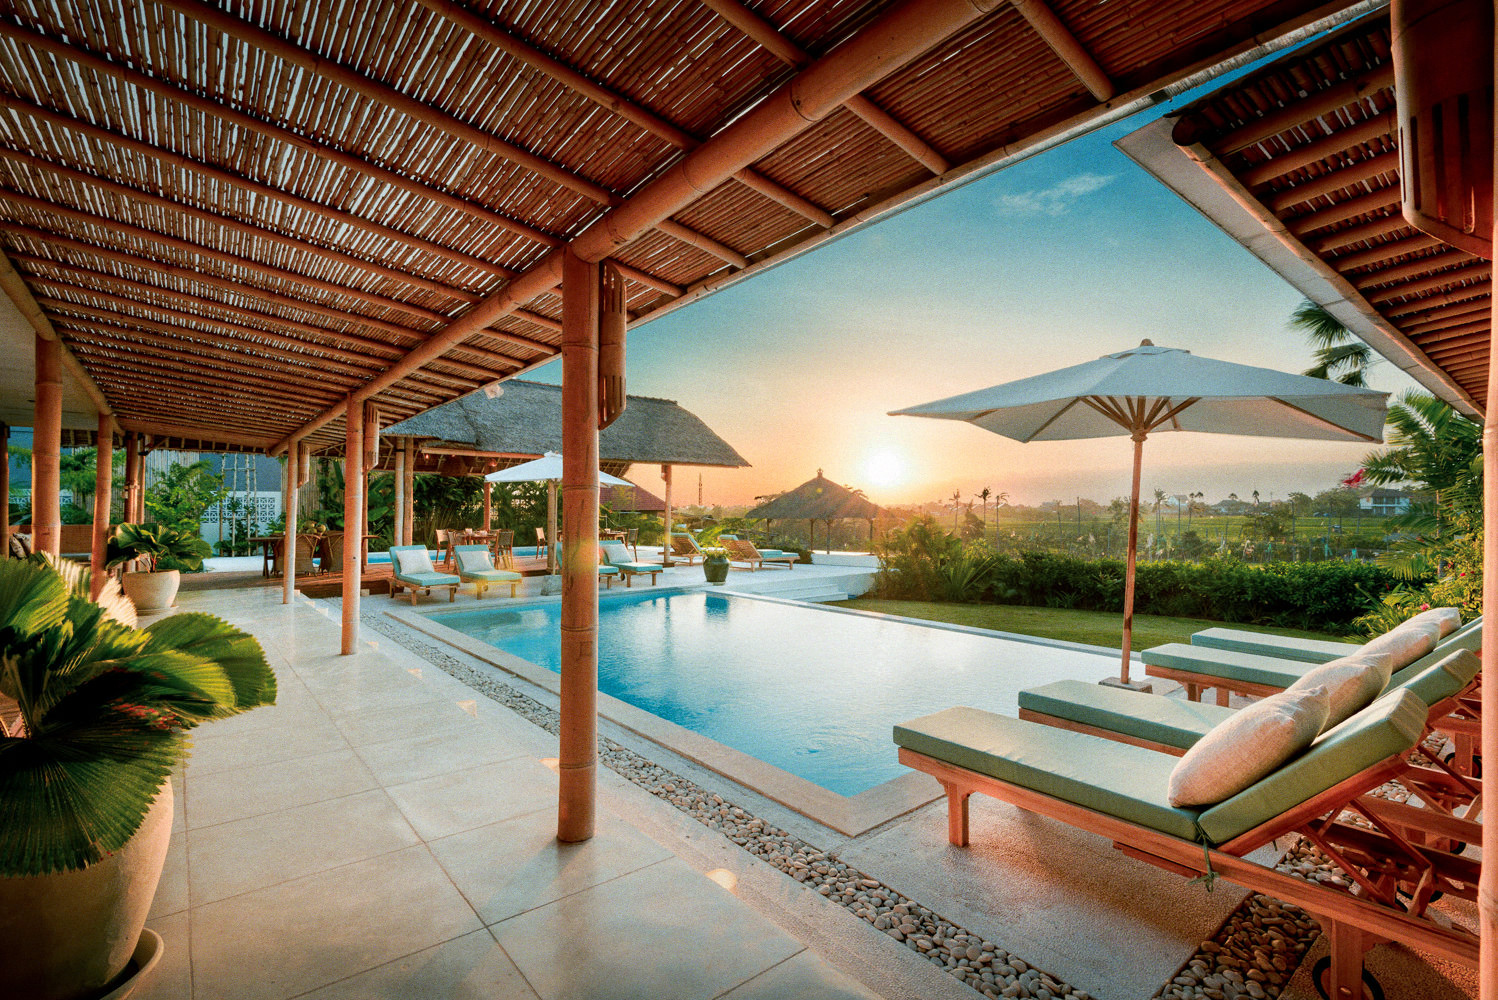 Bloomfield bali boutique accommodation spa in umalas for Boutique accommodation bali